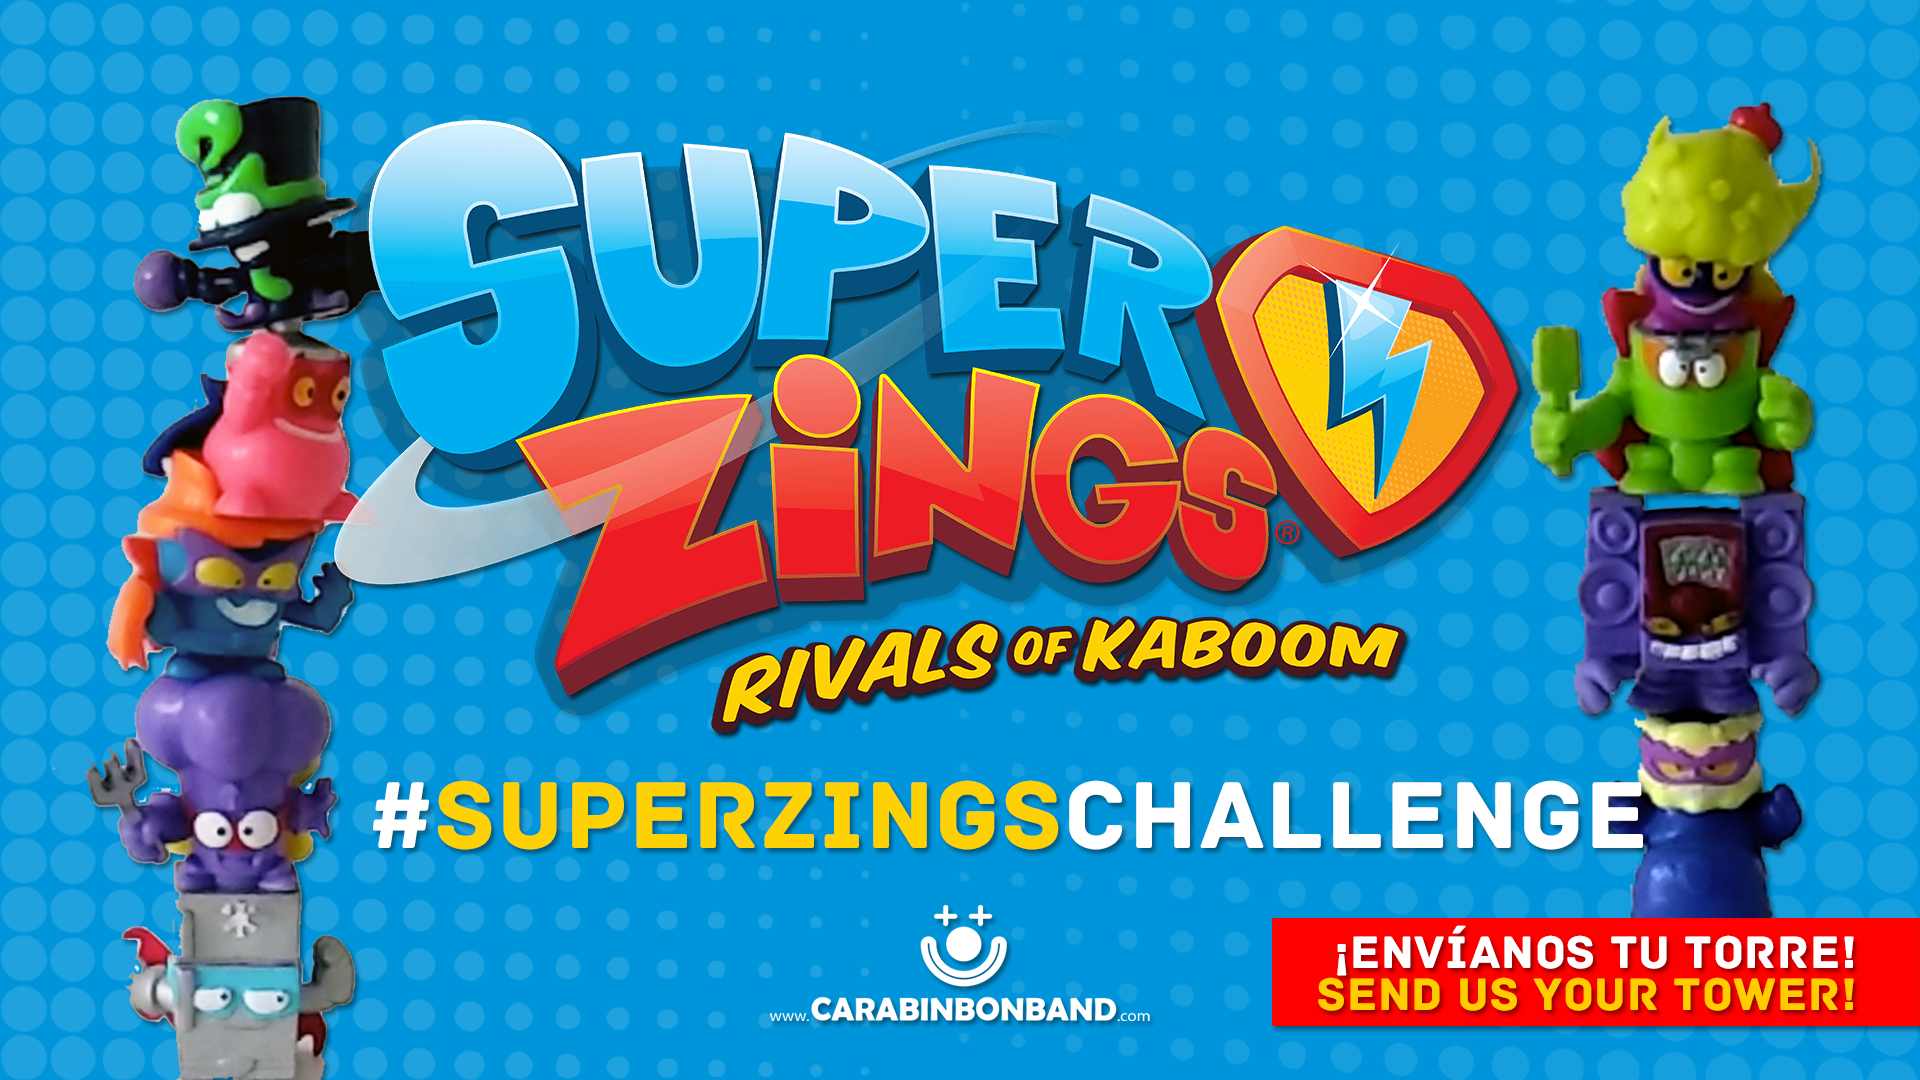 SUPERZINGS CHALLENGE - How many heroes and villains can you overlay?